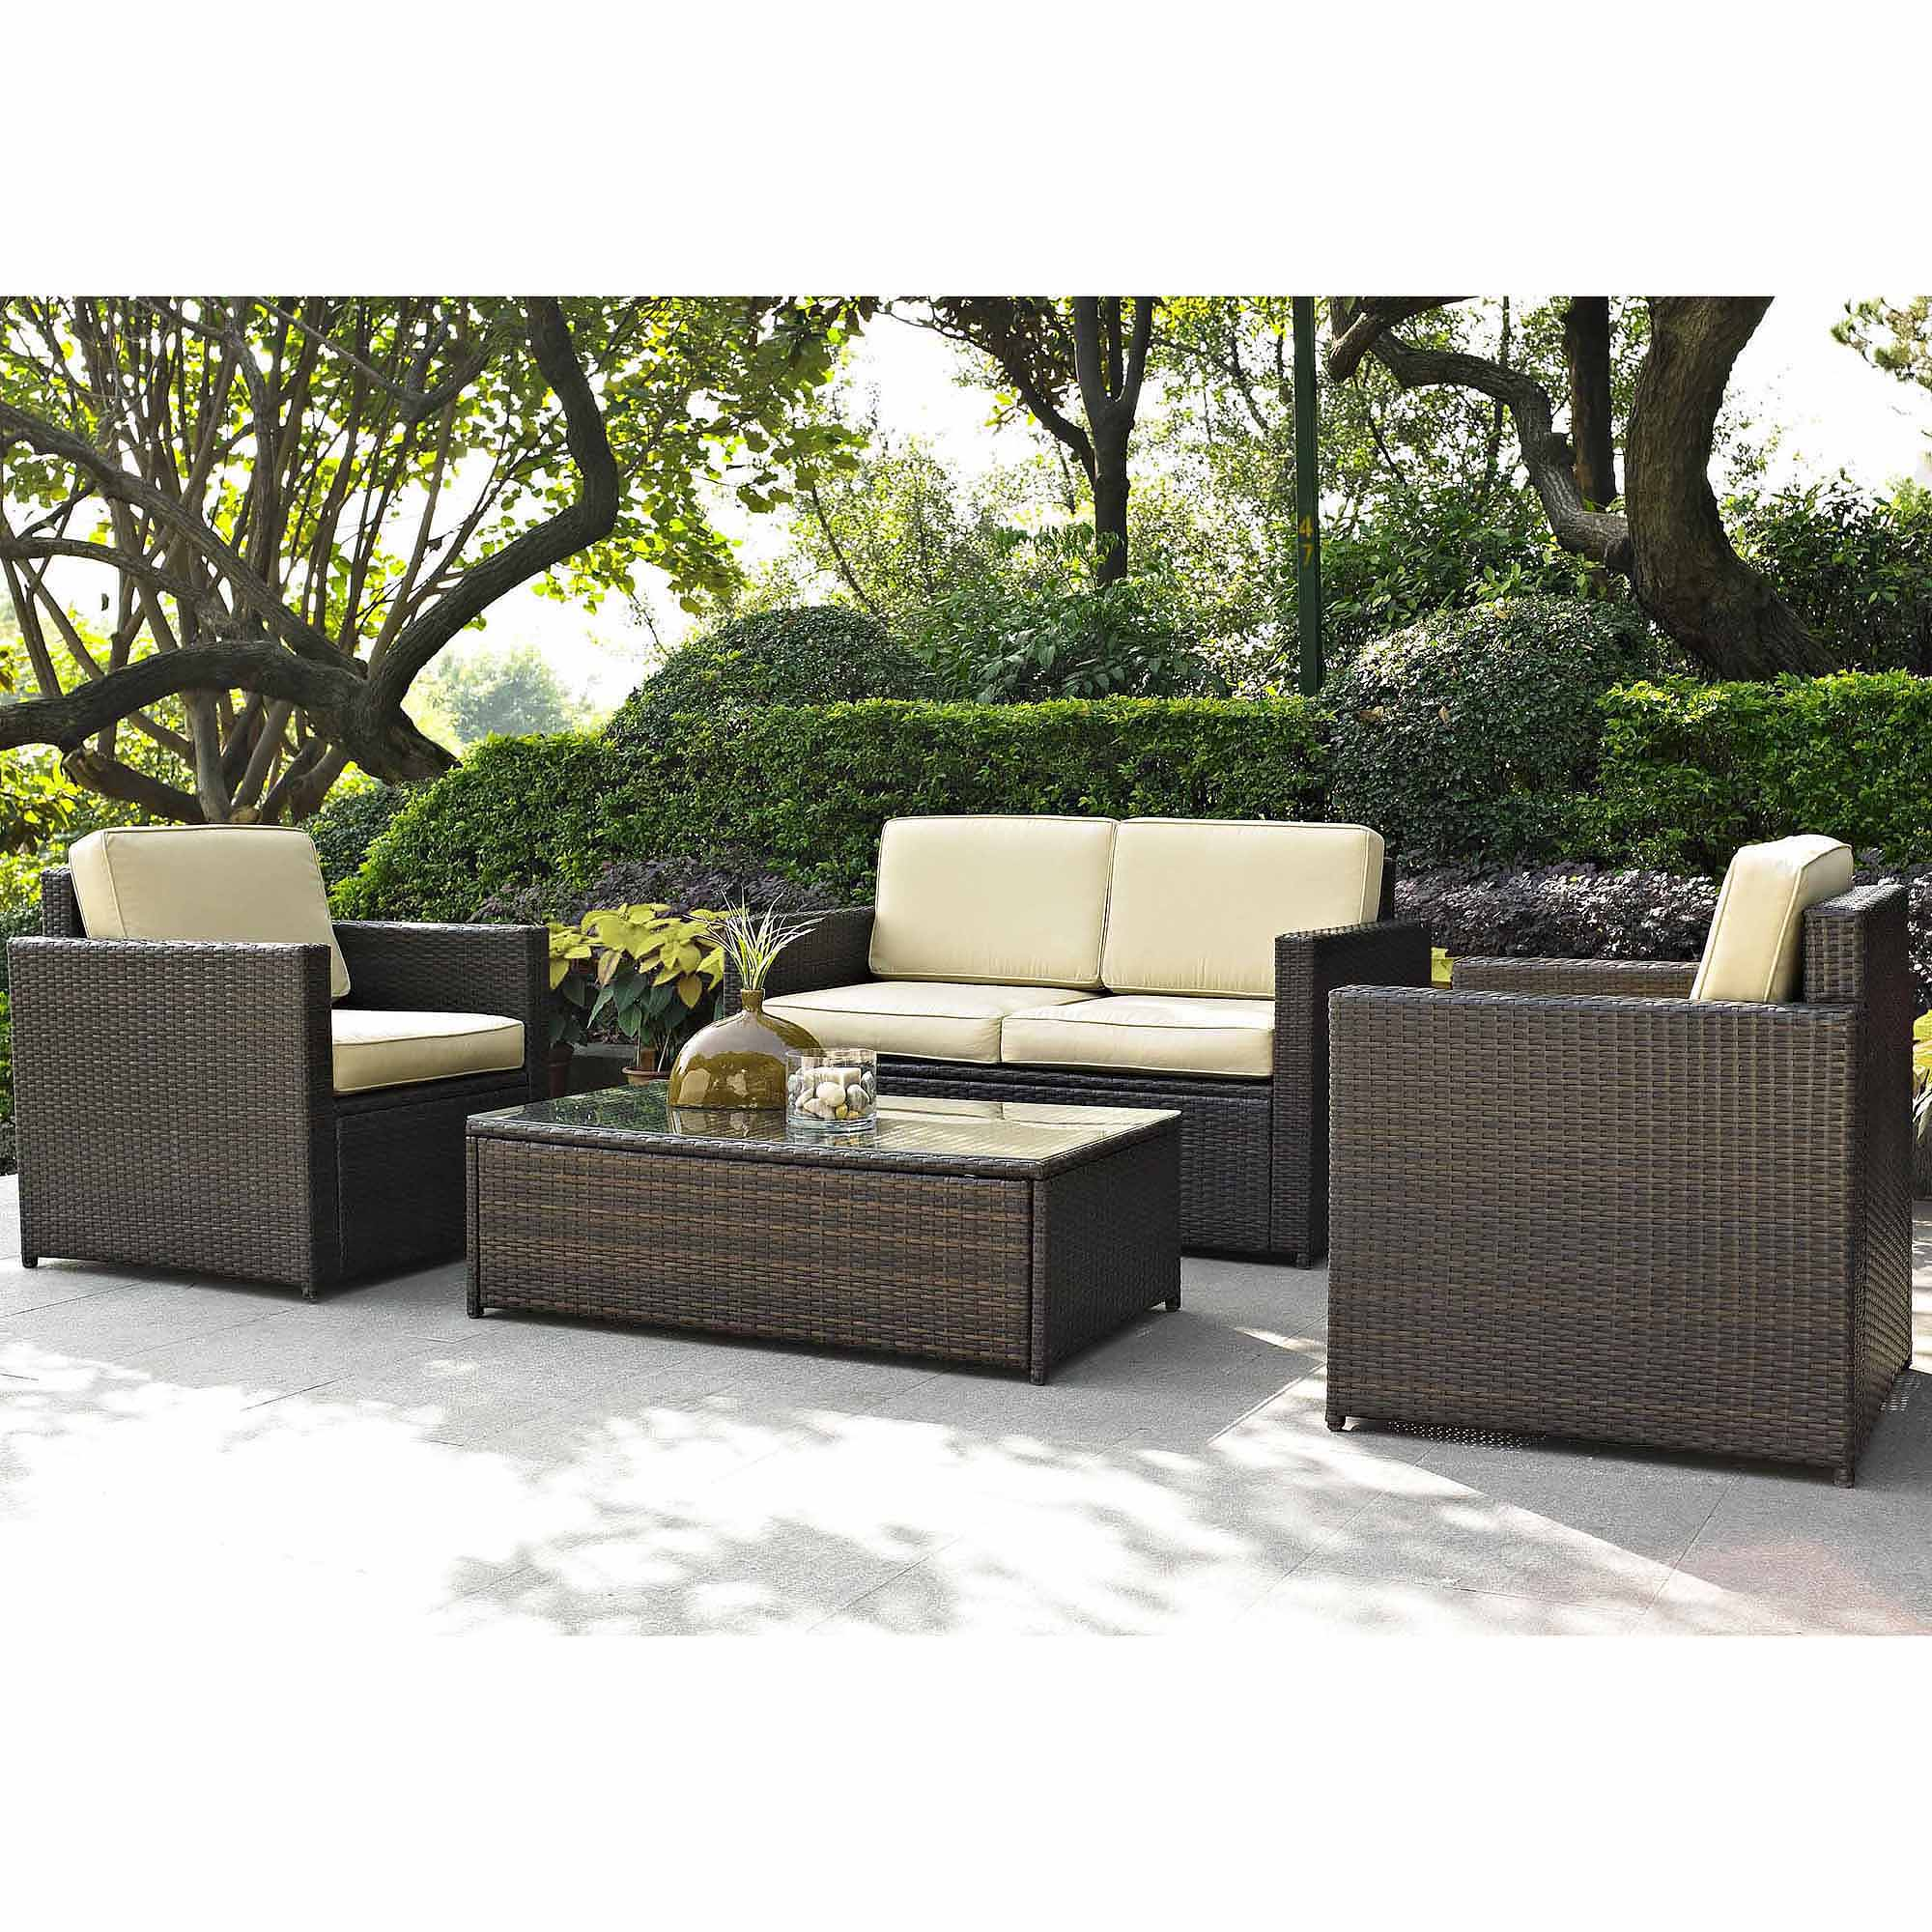 patio set god wicker furniture outdoor piece com sofa pe sectional conversation rattan sets aosom outsunny